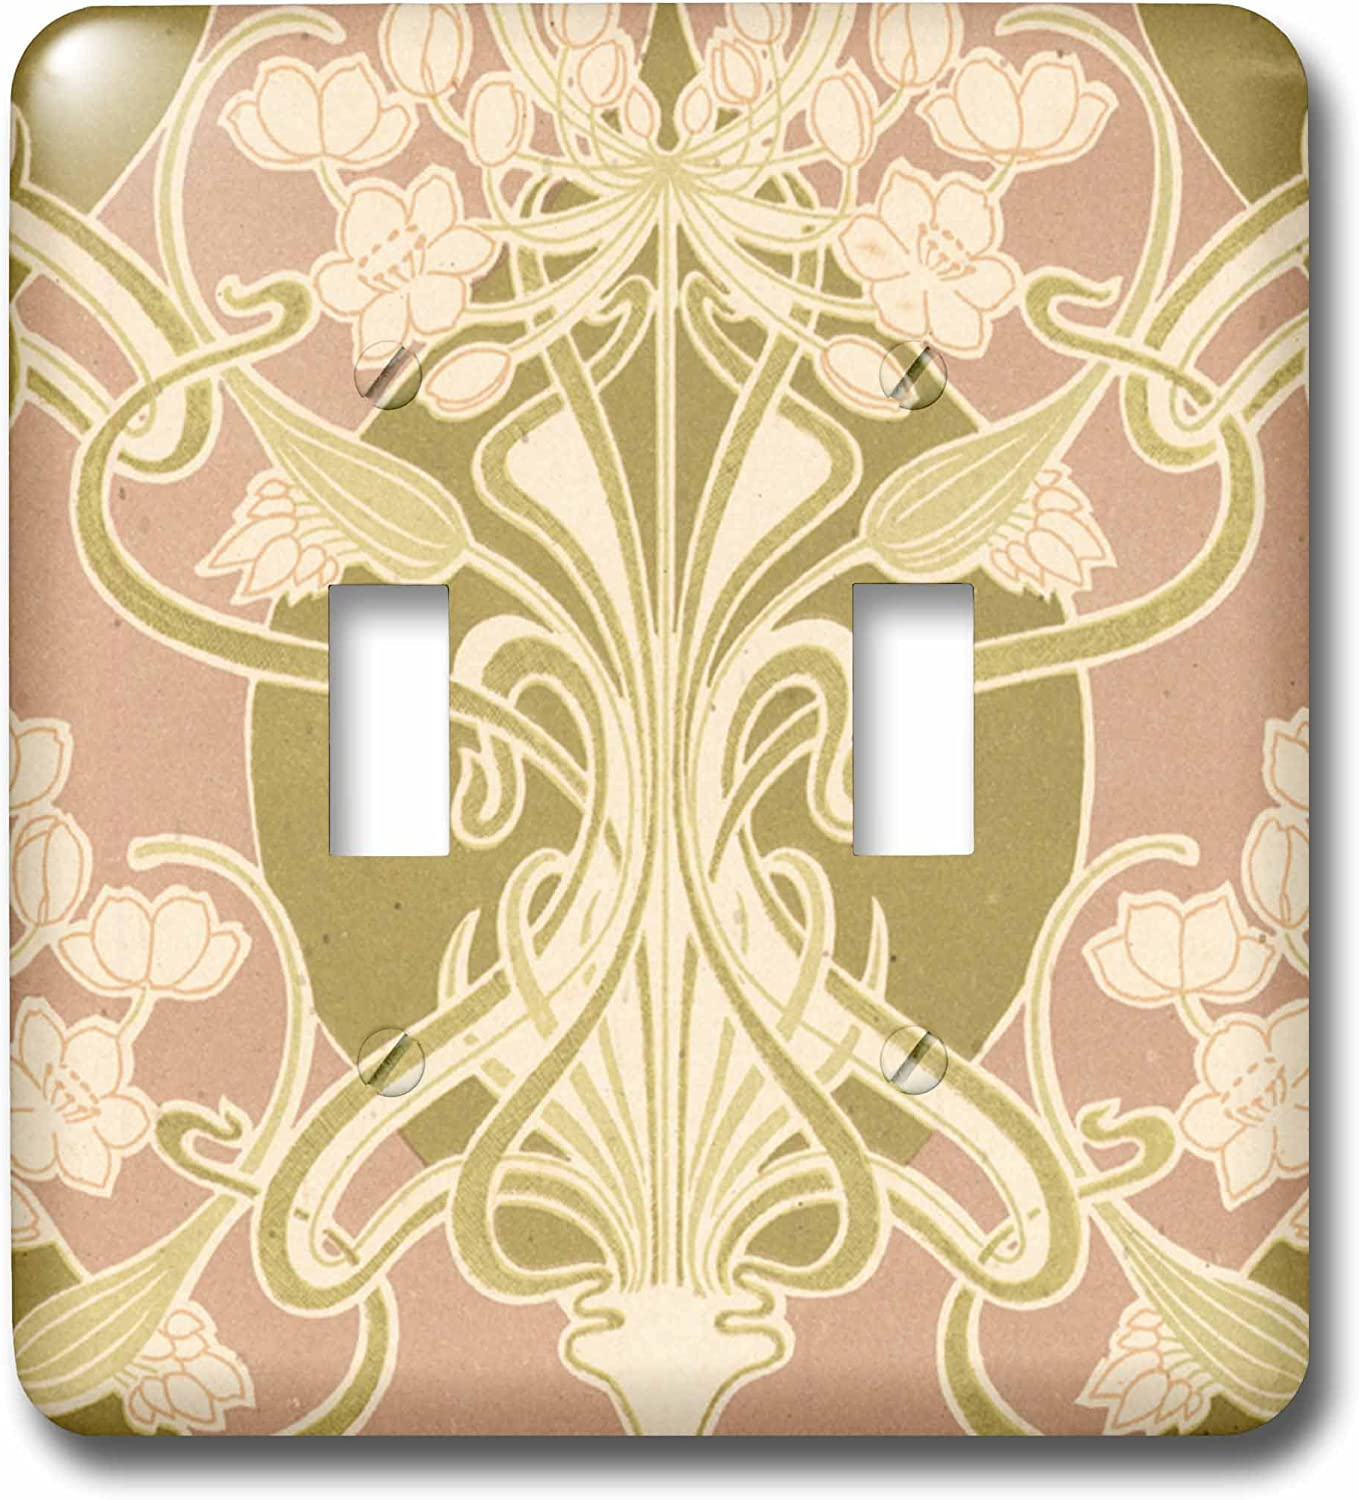 3drose Lsp 113450 2 Vintage Art Nouveau Lovely Flowers And Knots Abstract Design Double Toggle Switch Switch Plates Amazon Com